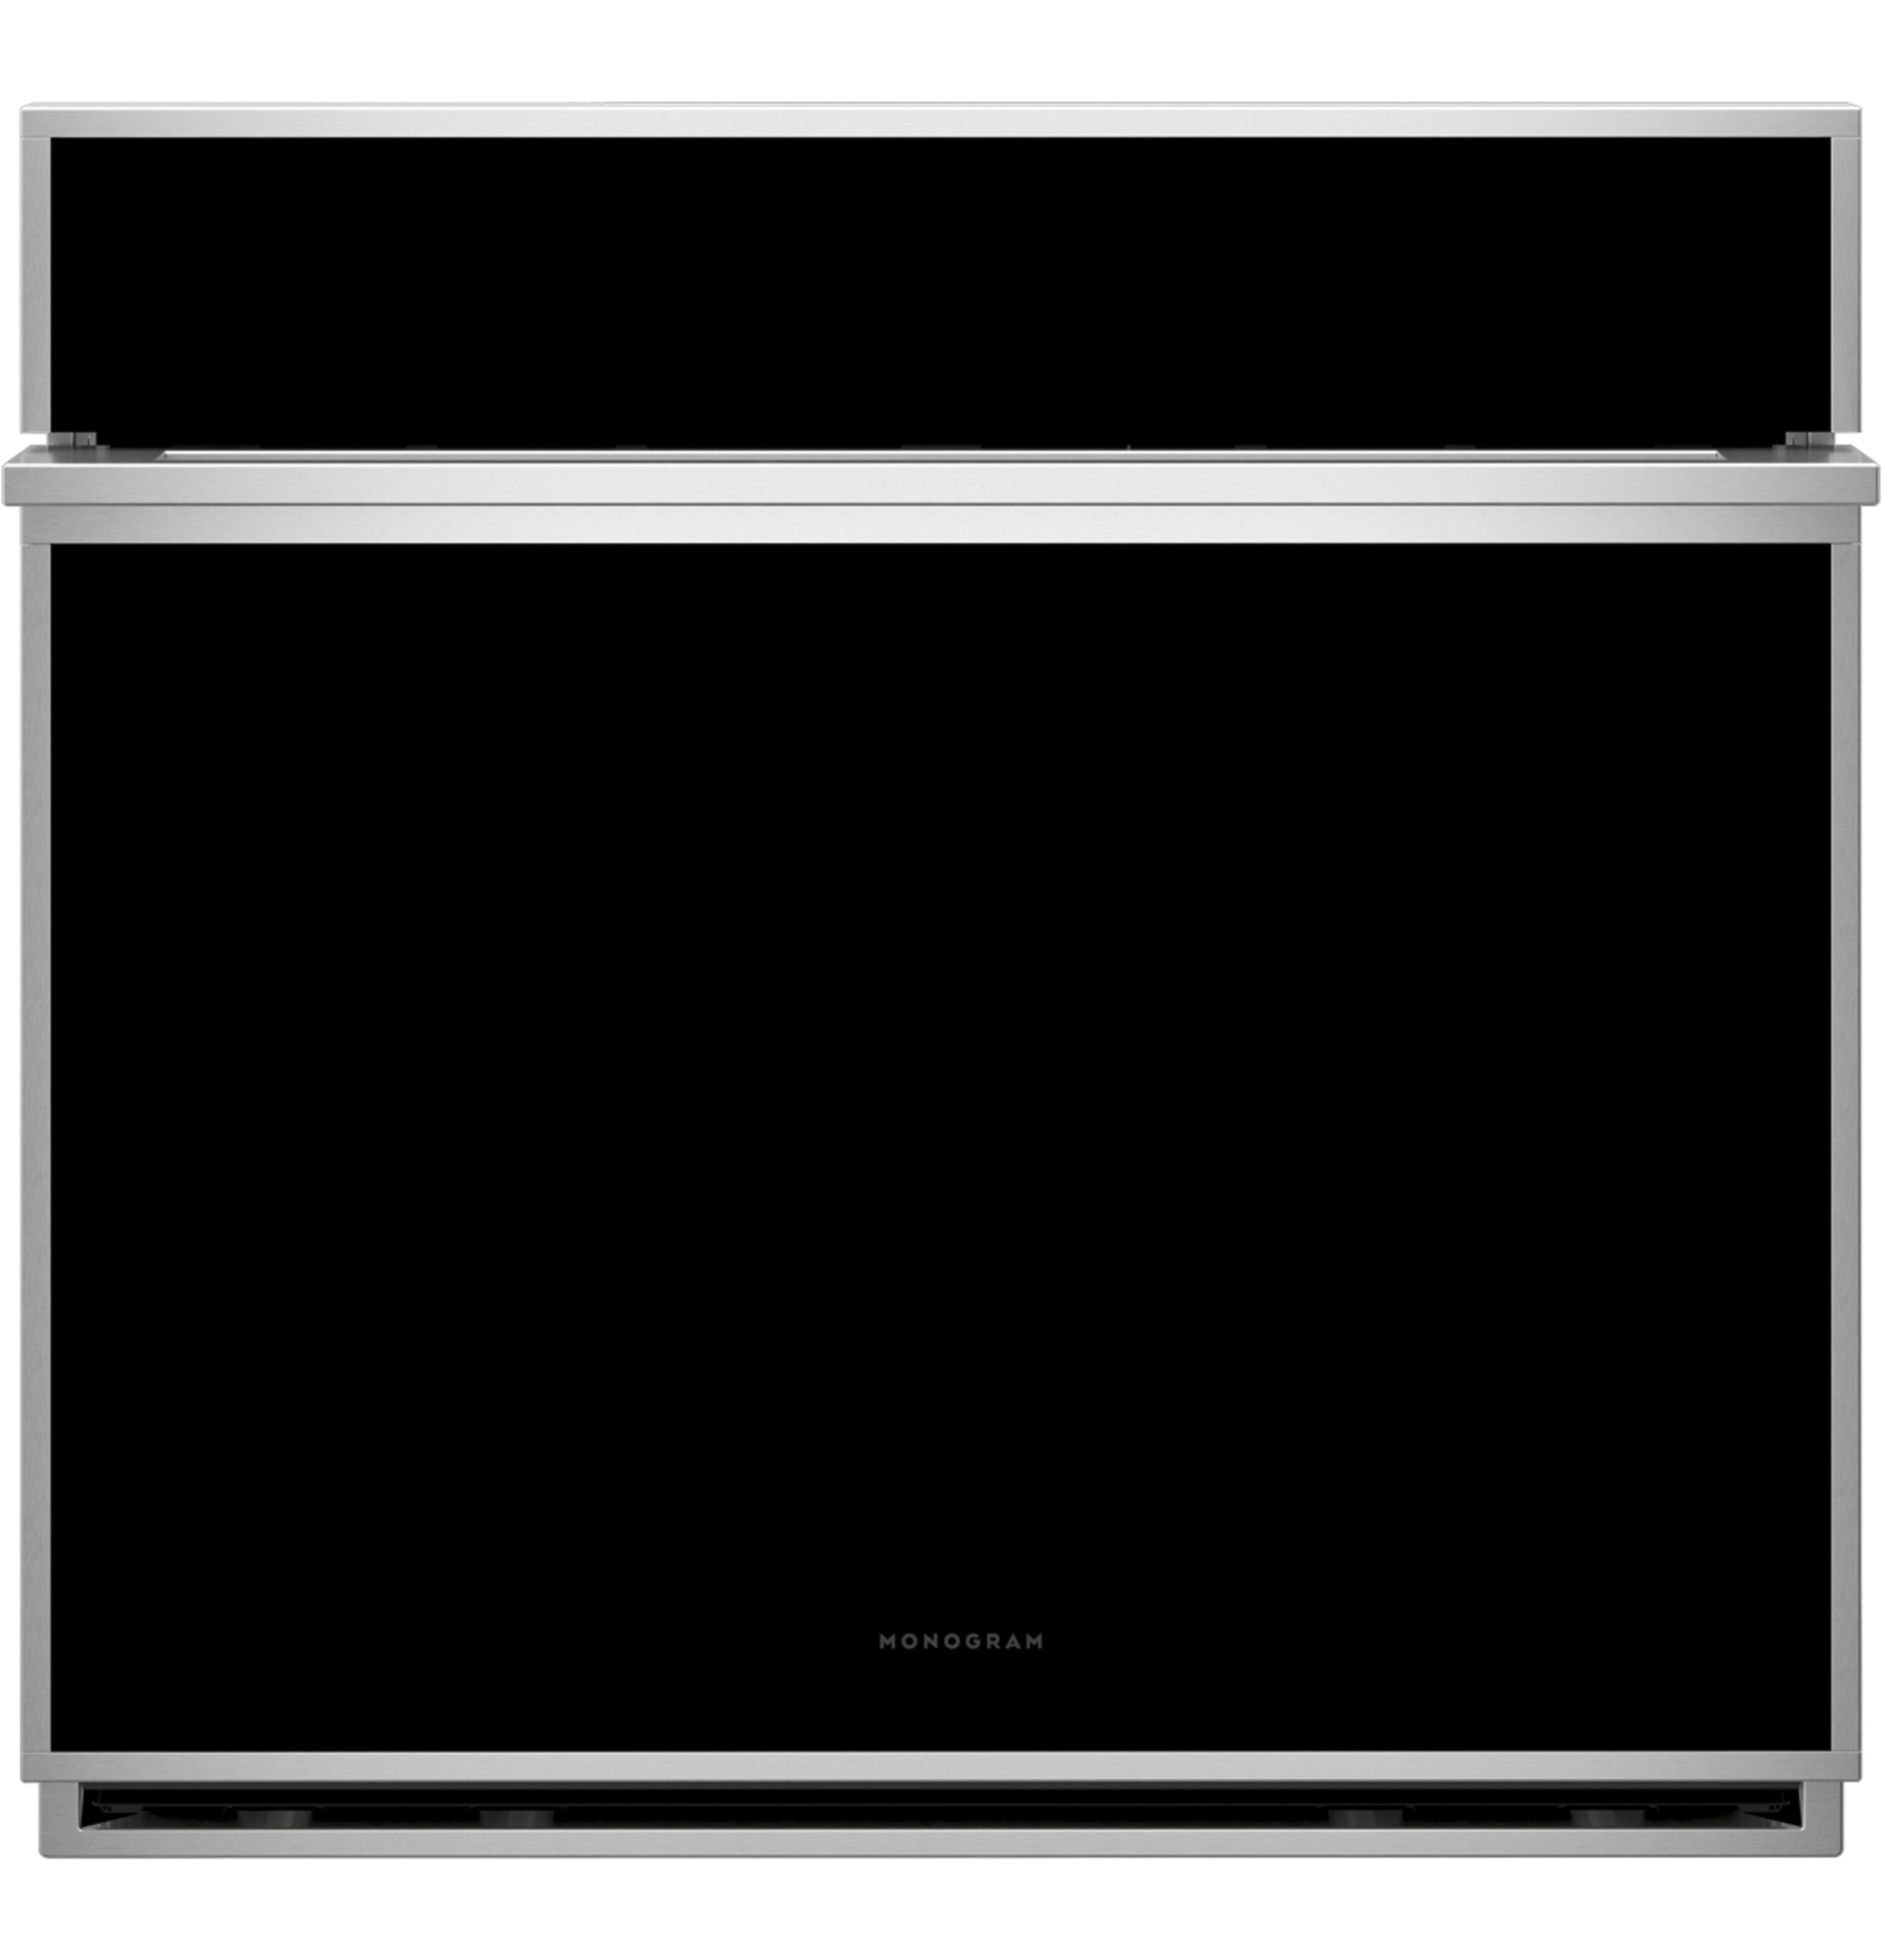 "Monogram Monogram 30"" Smart Electric Convection Single Wall Oven Minimalist Collection"